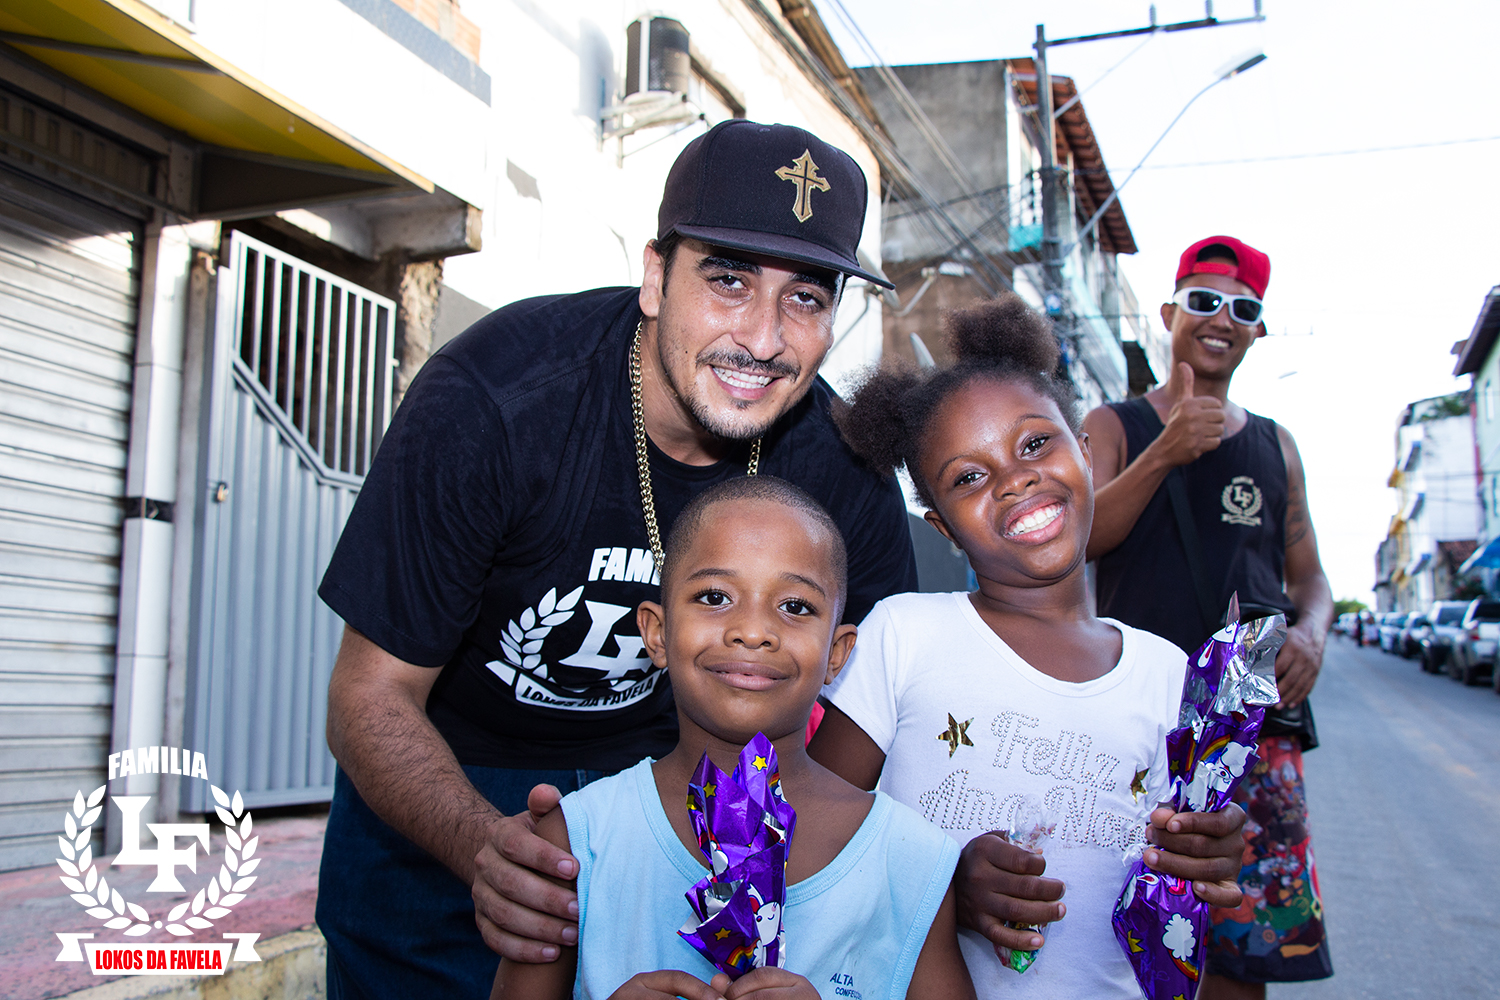 Kaos Mc delivers smiles to the kids of the Favela in Brazil